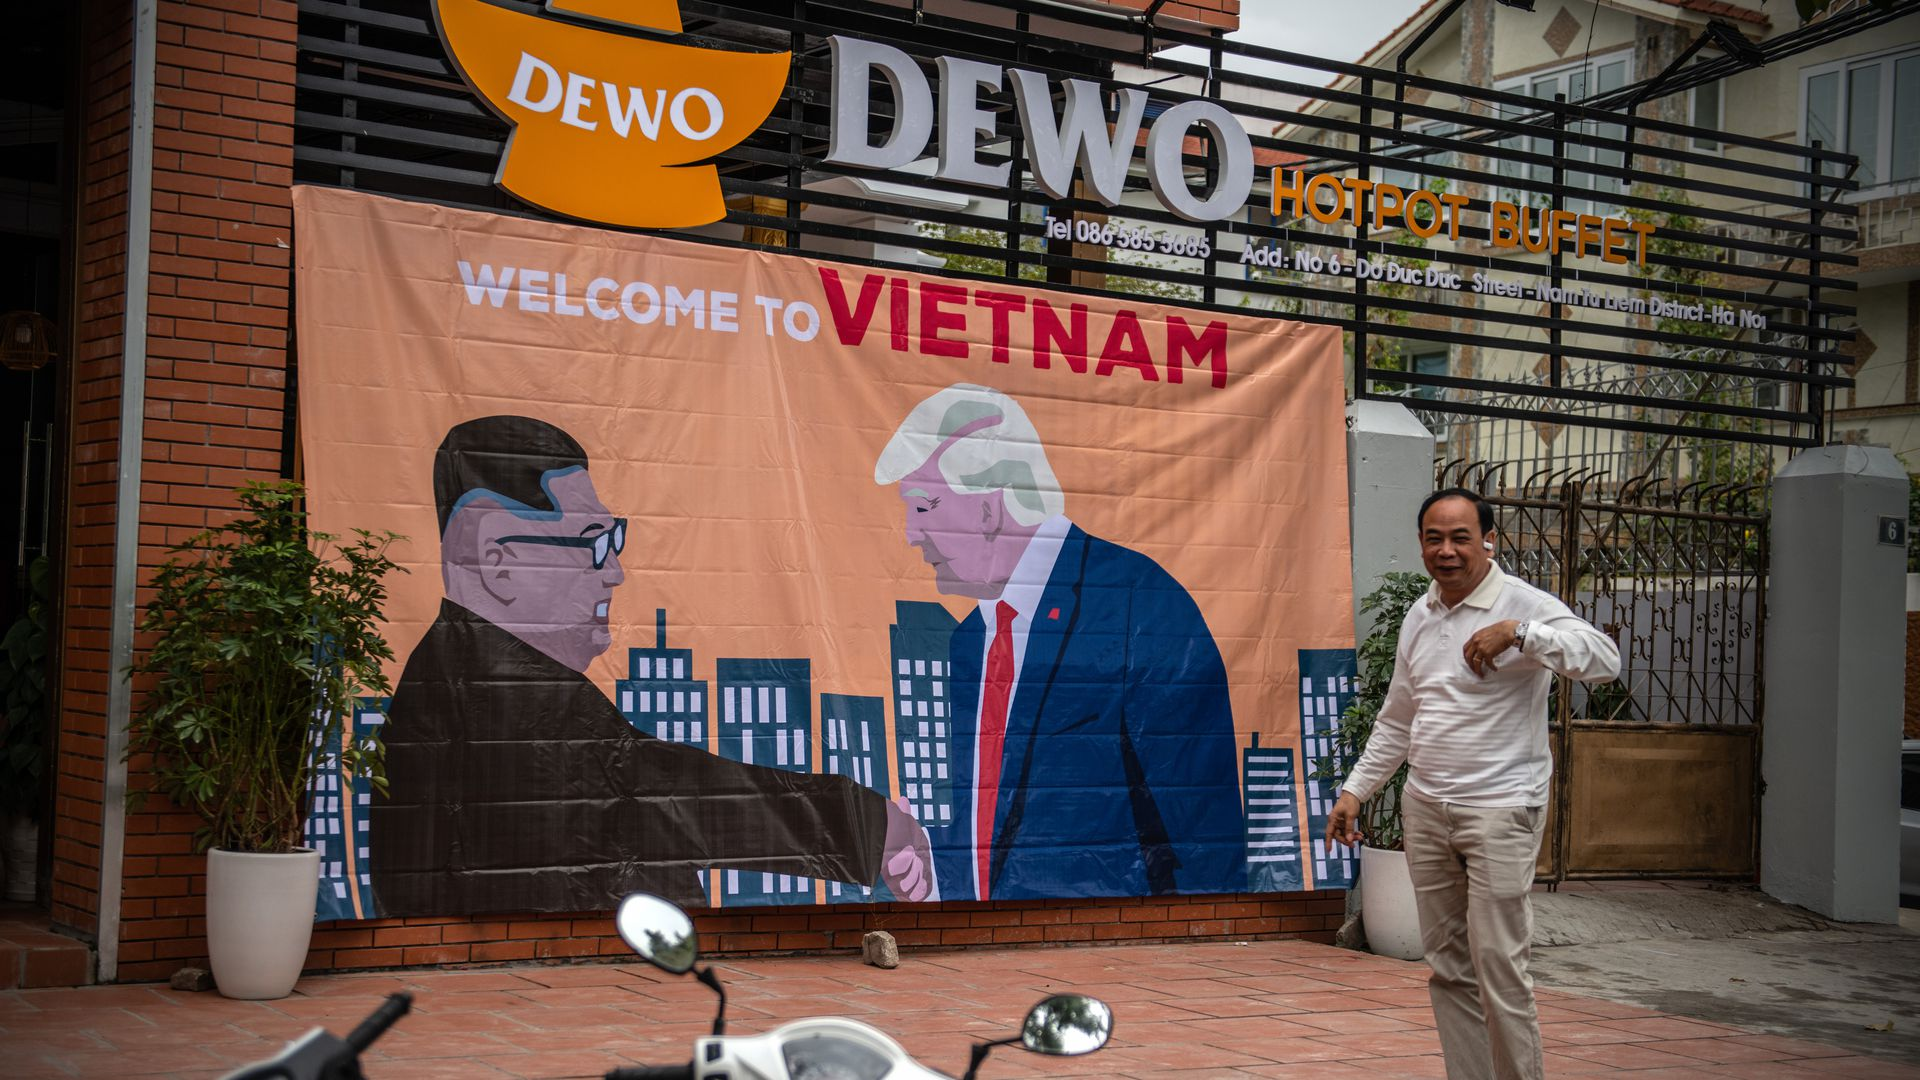 A banner showing President Donald Trump and North Korean leader Kim Jong-un shaking hands next to the words 'Welcome to Vietnam'